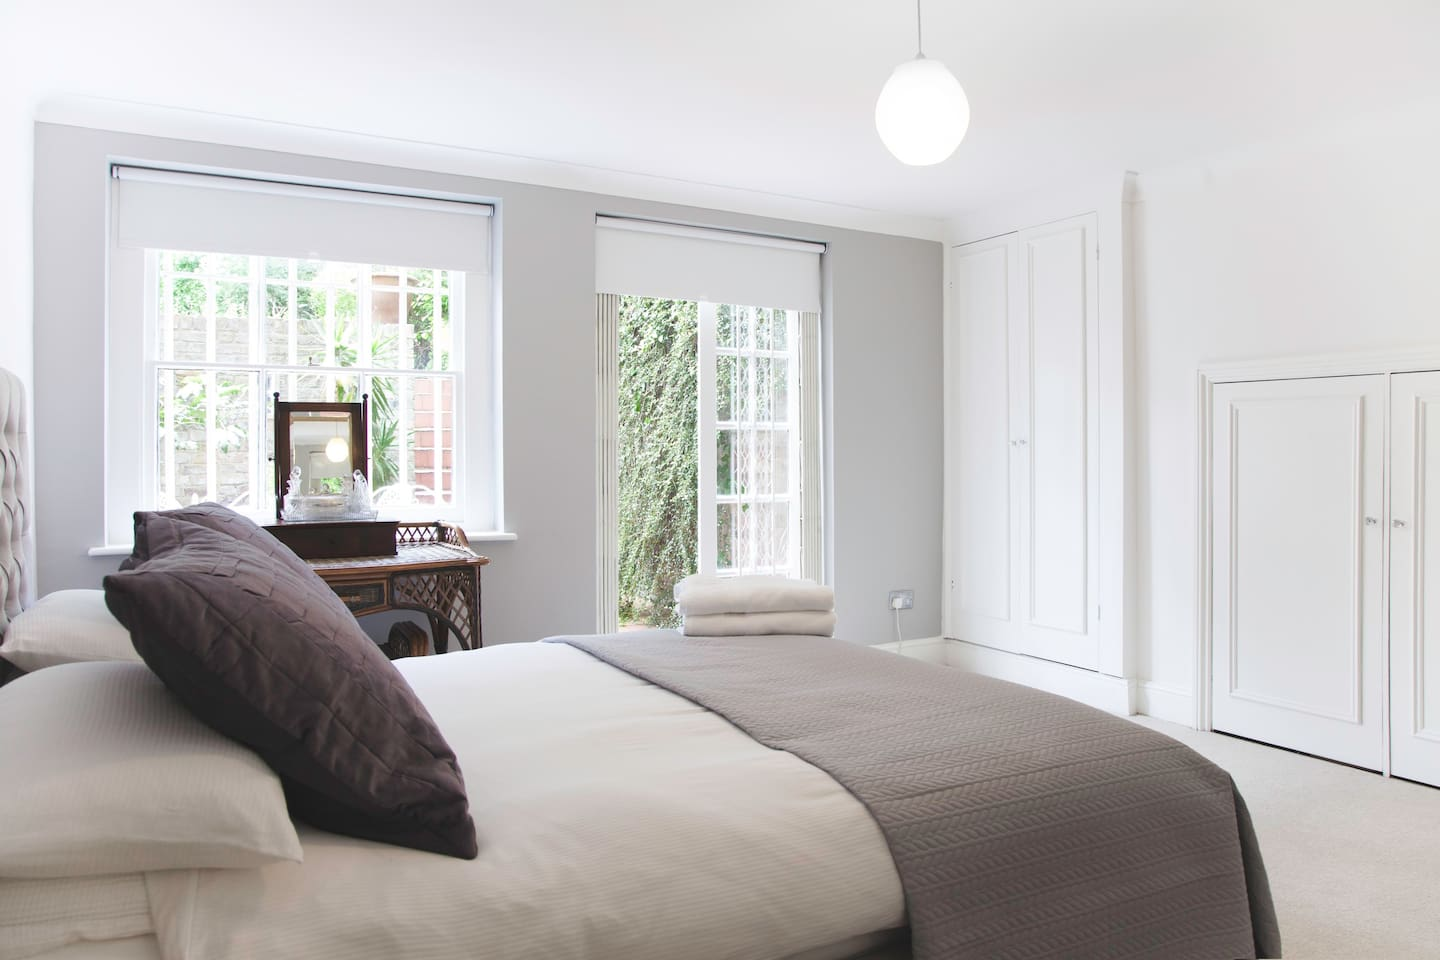 Master bedroom with direct access onto charming patio area